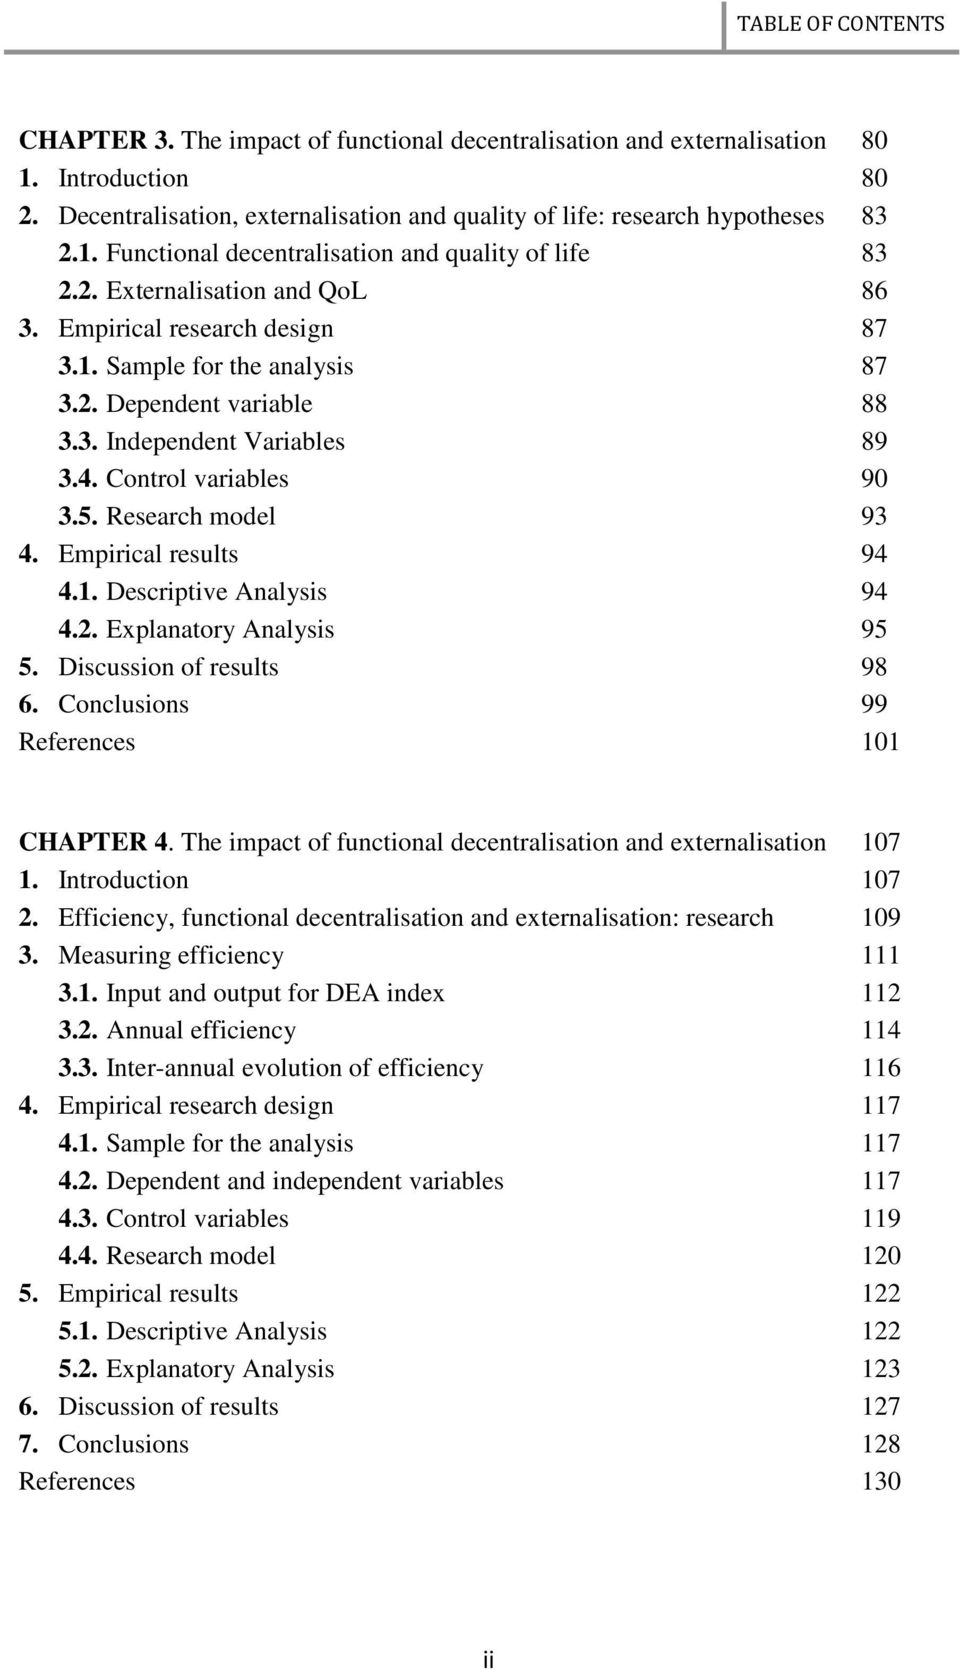 Research model 93 4. Empirical results 94 4.1. Descriptive Analysis 94 4.2. Explanatory Analysis 95 5. Discussion of results 98 6. Conclusions 99 References 101 CHAPTER 4.